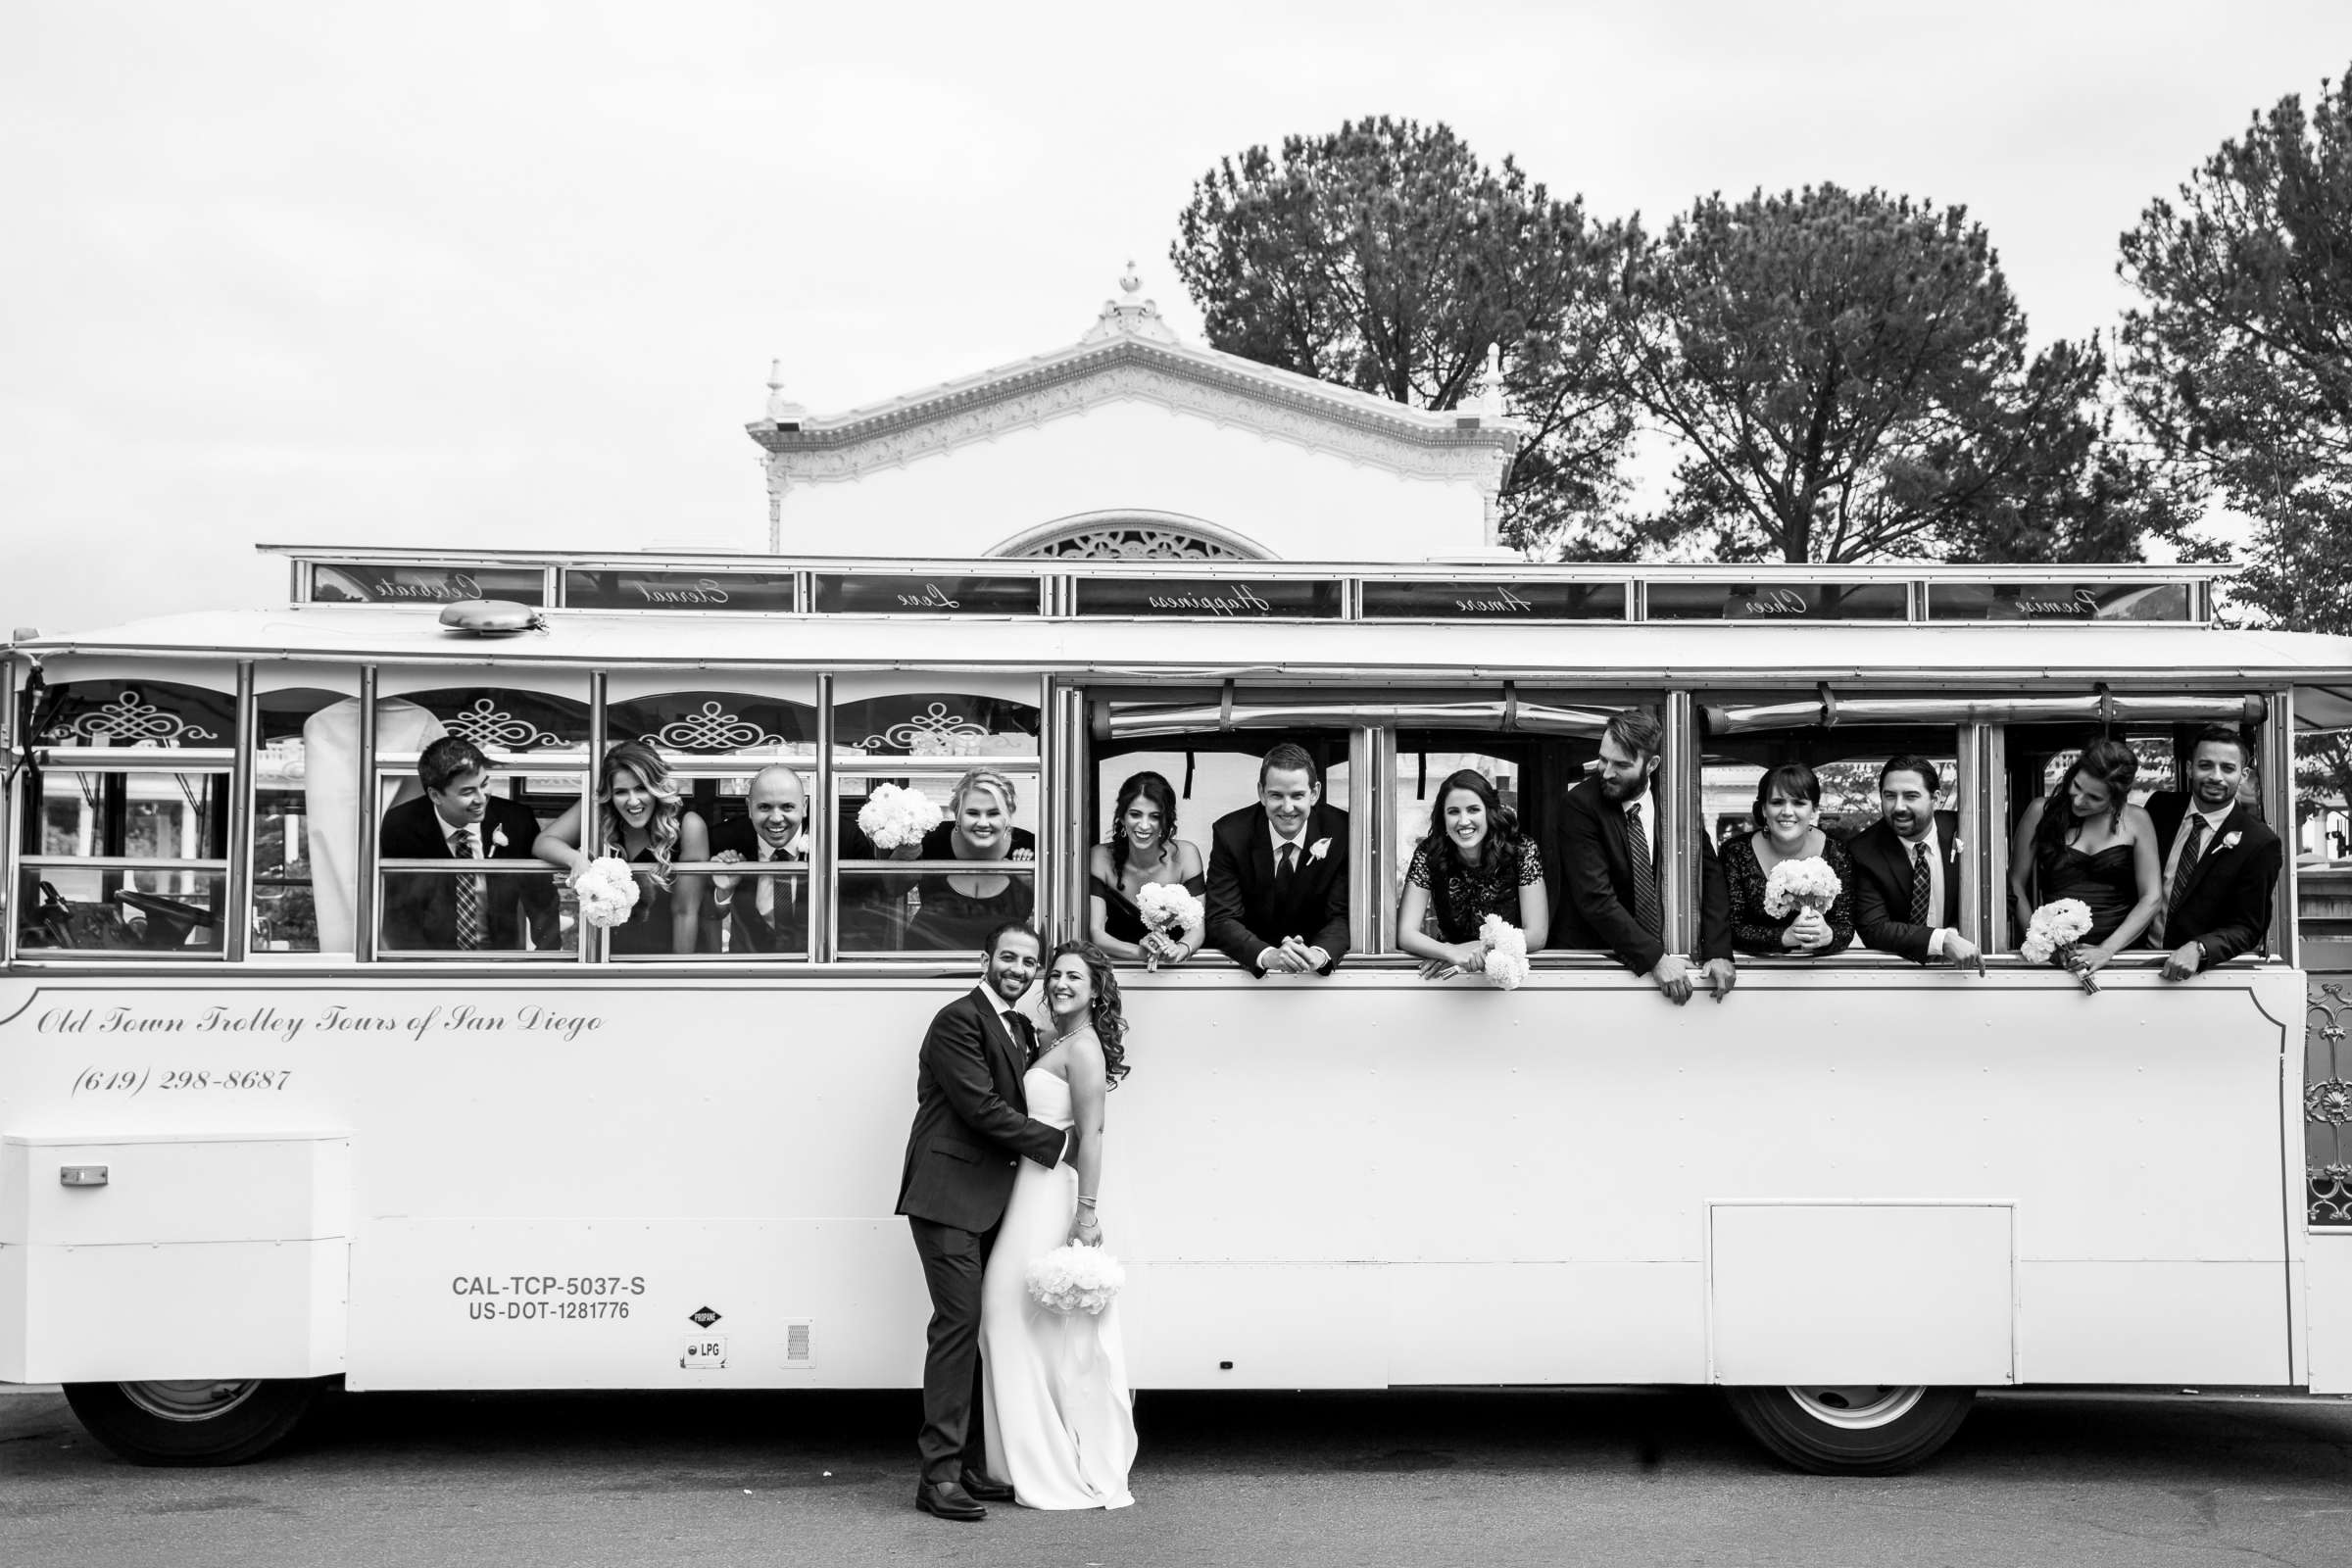 San Diego Museum of Art Wedding coordinated by First Comes Love Weddings & Events, Ruthie and Larry Wedding Photo #236757 by True Photography